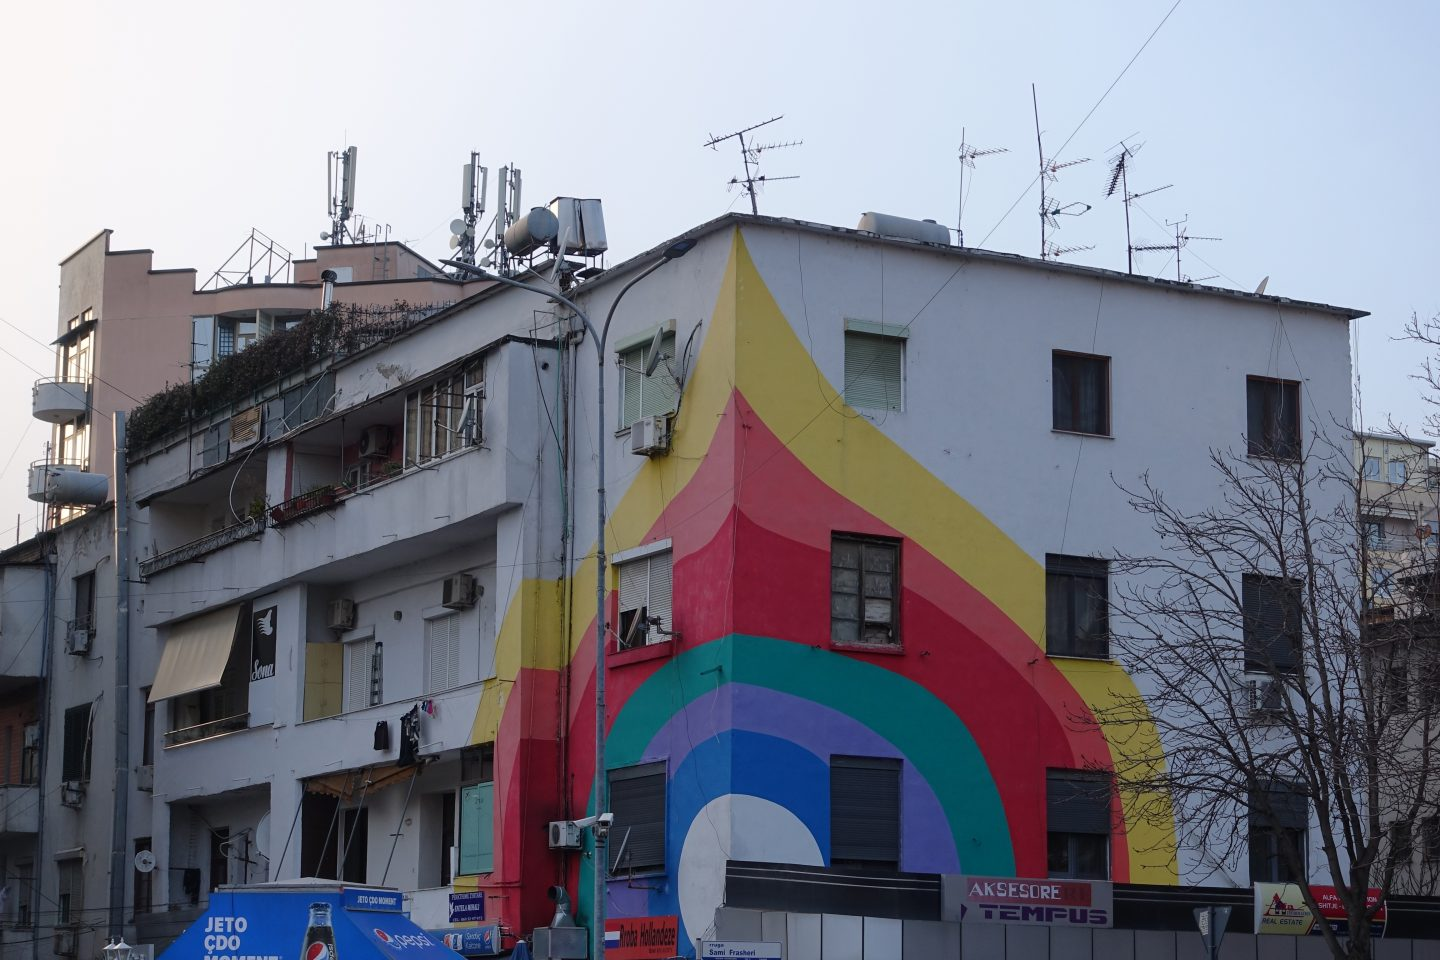 All the colors of the rainbow: Street art and buildings in Tirana